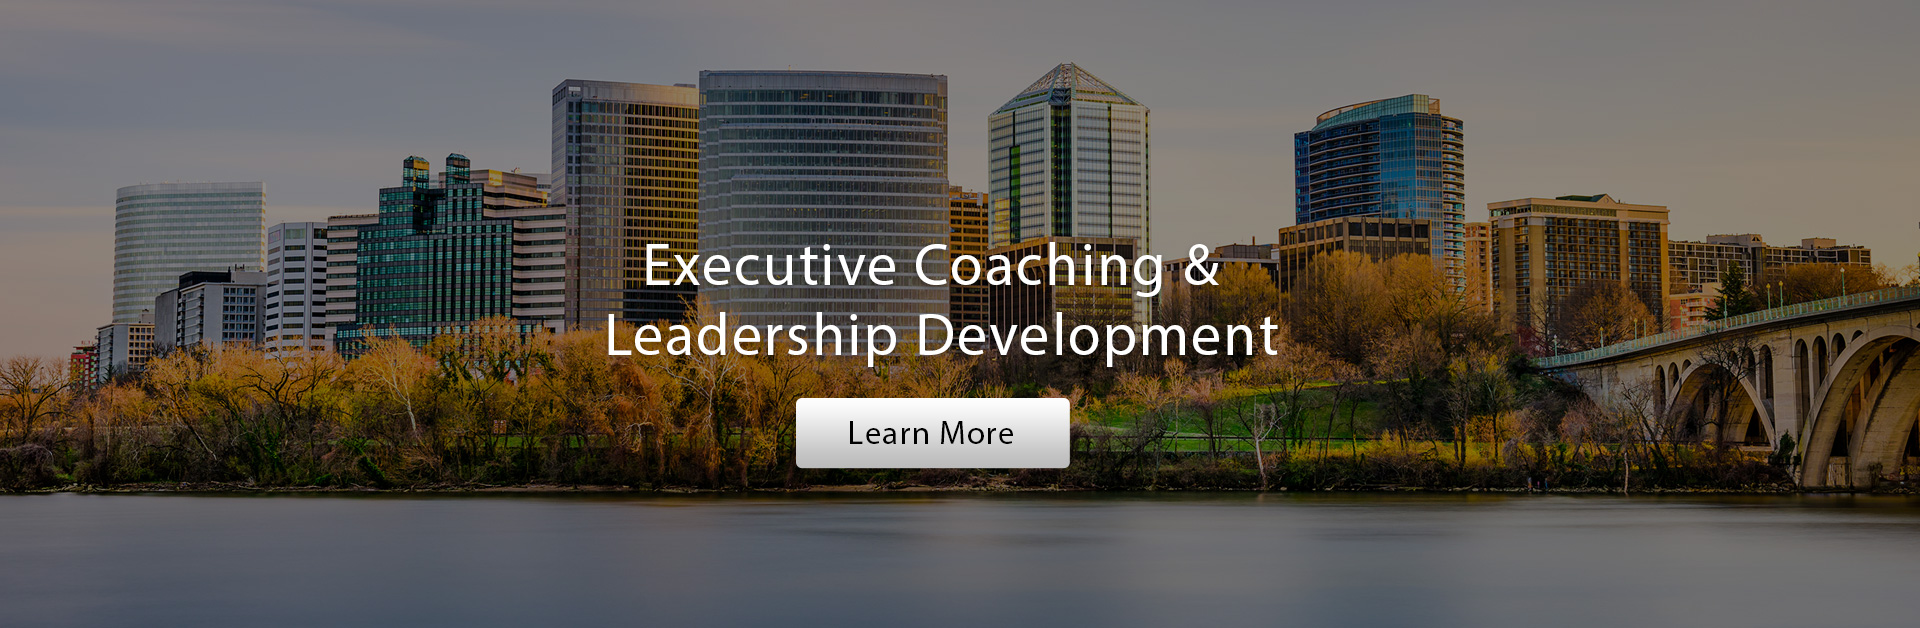 Executive Coaching & Leadership Development